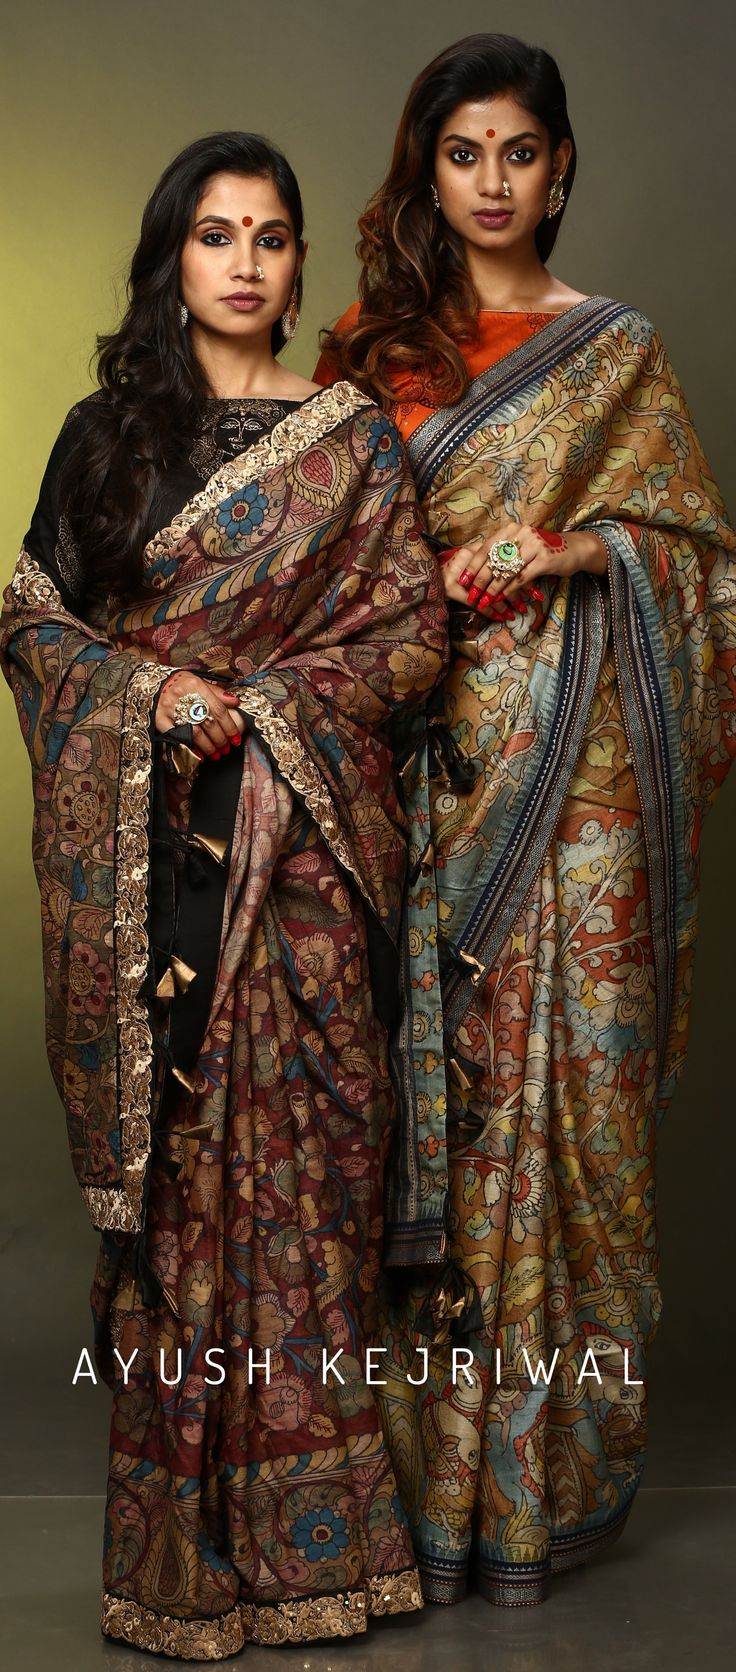 Hand painted Kalamkari Sarees by Ayush Kejriwal. For purchases email me at designerayushkejriwal@hotmail.com or what's app me on 00447840384707 We ship WORLDWIDE. Instagram - designerayushkejriwal